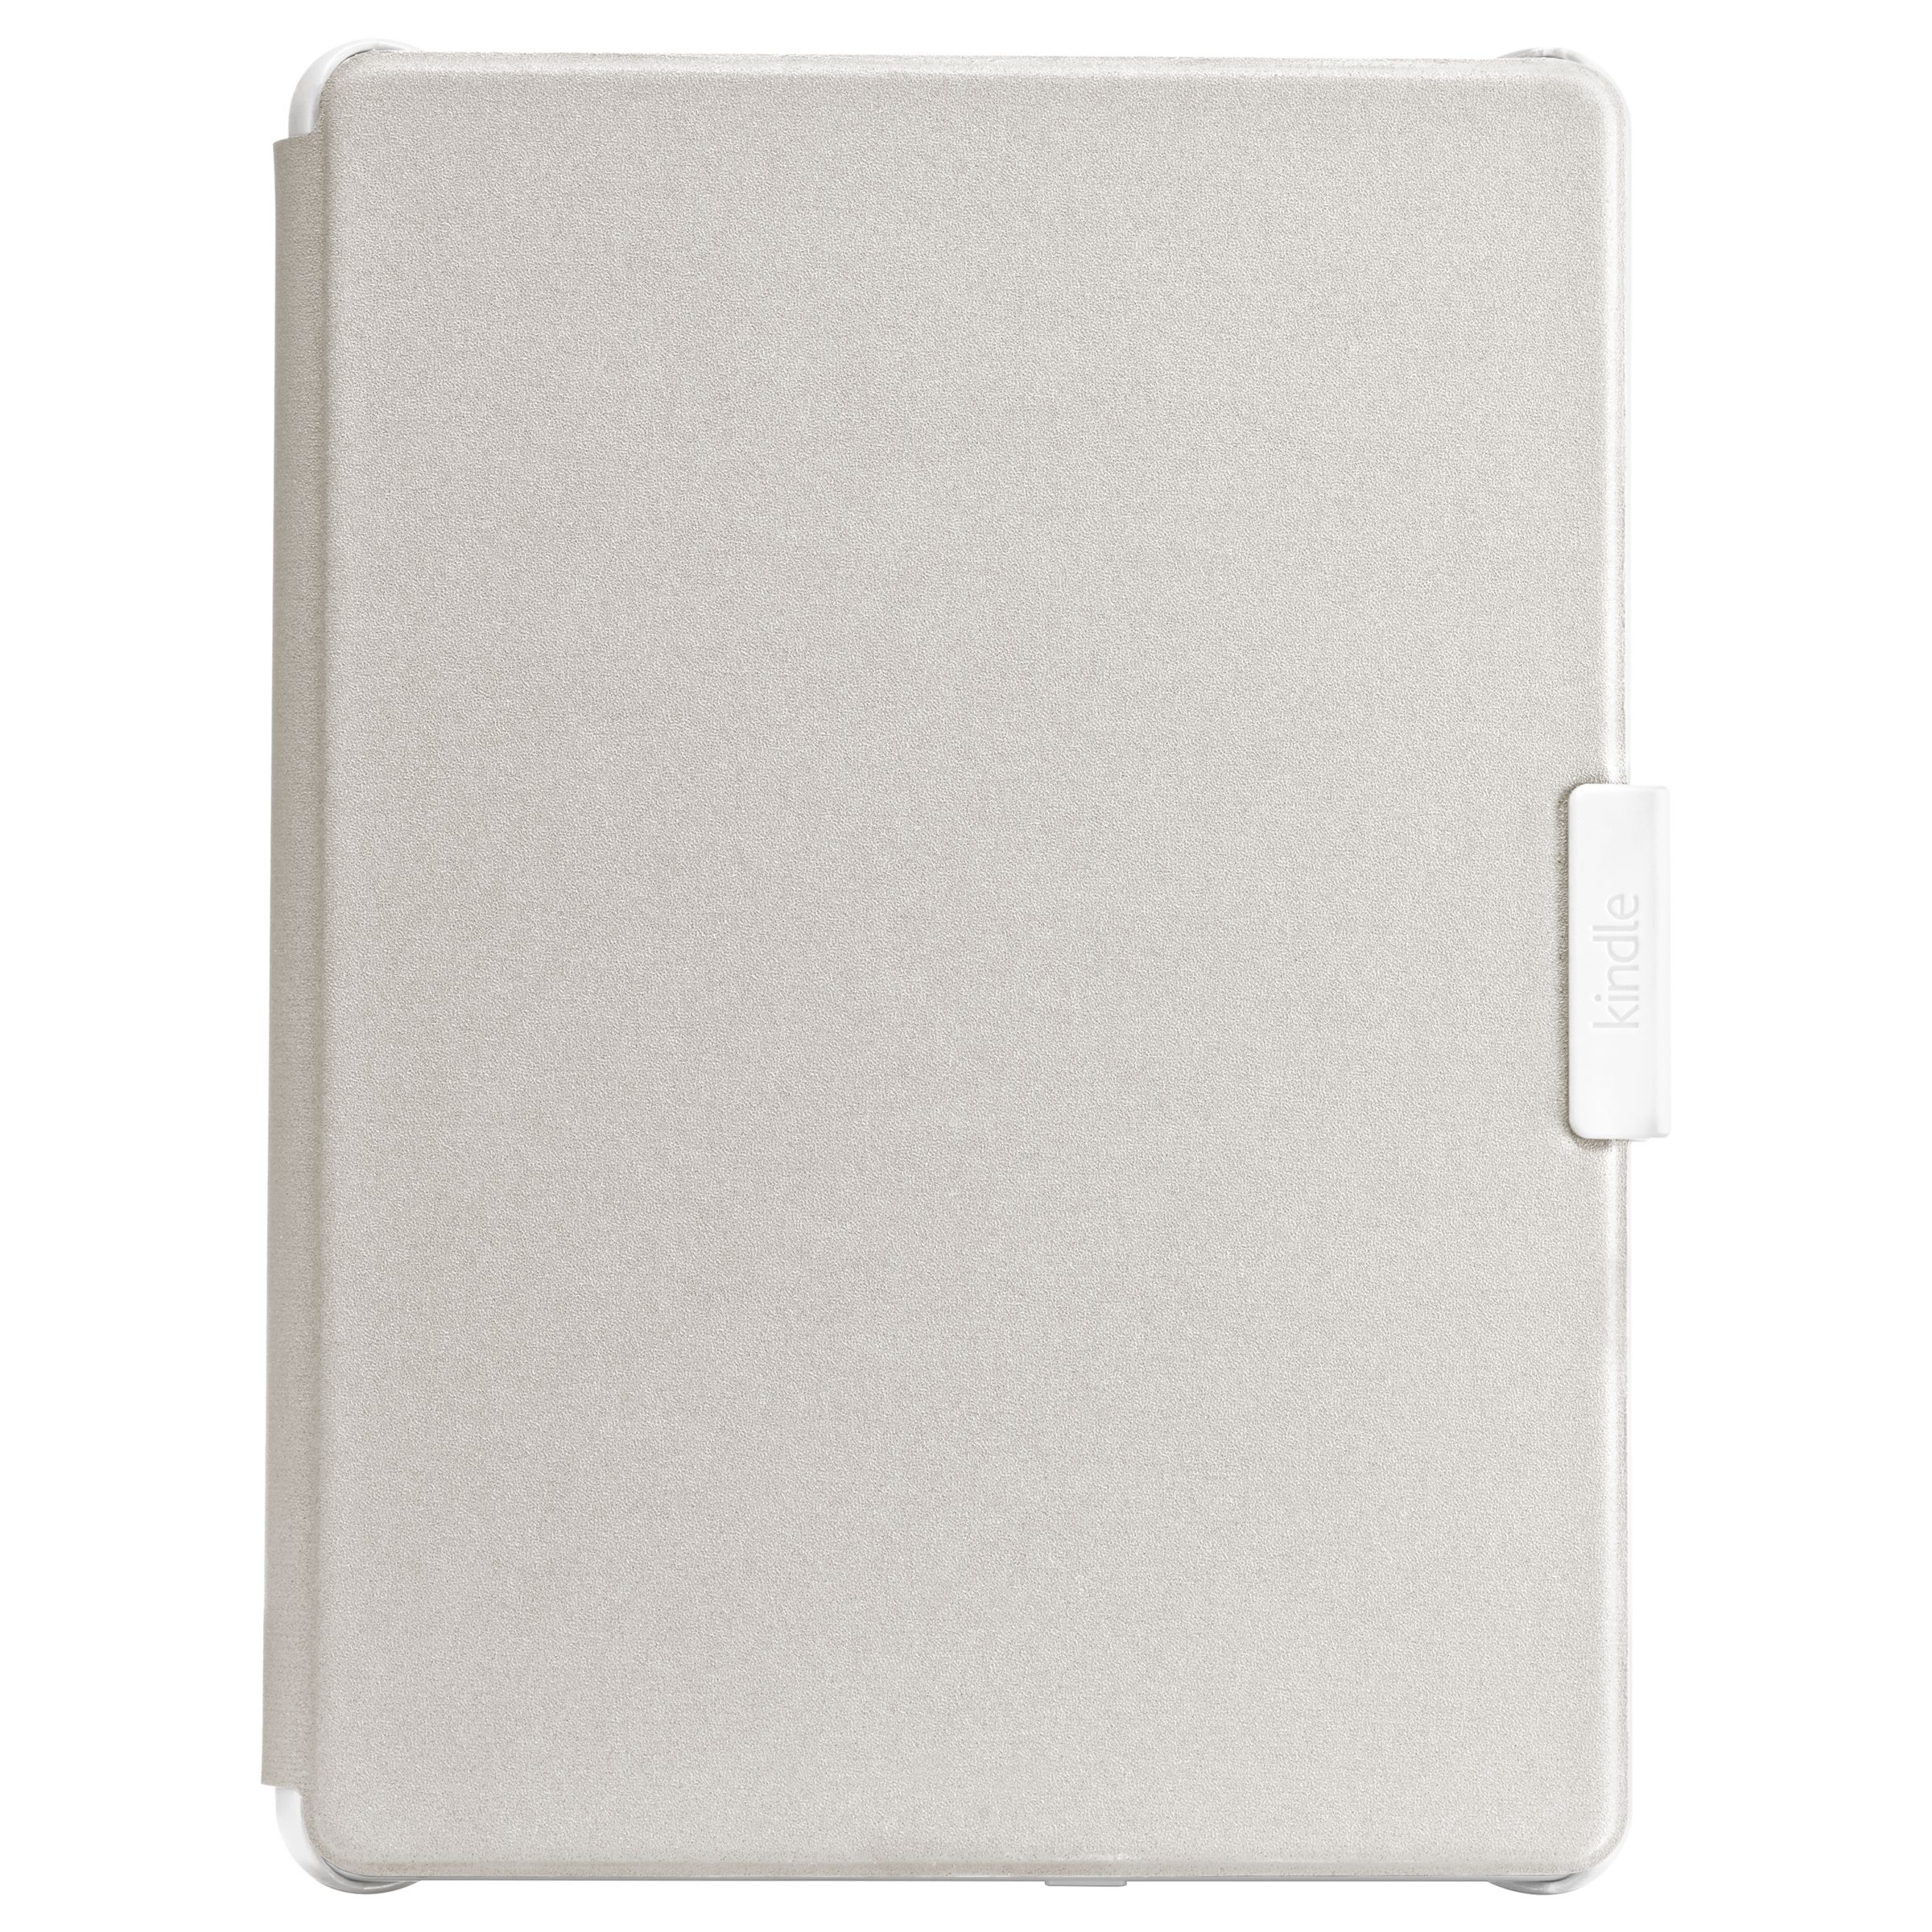 promo code 8b0c4 866fa Amazon Protective Cover For Kindle 8th Generation, Cloud